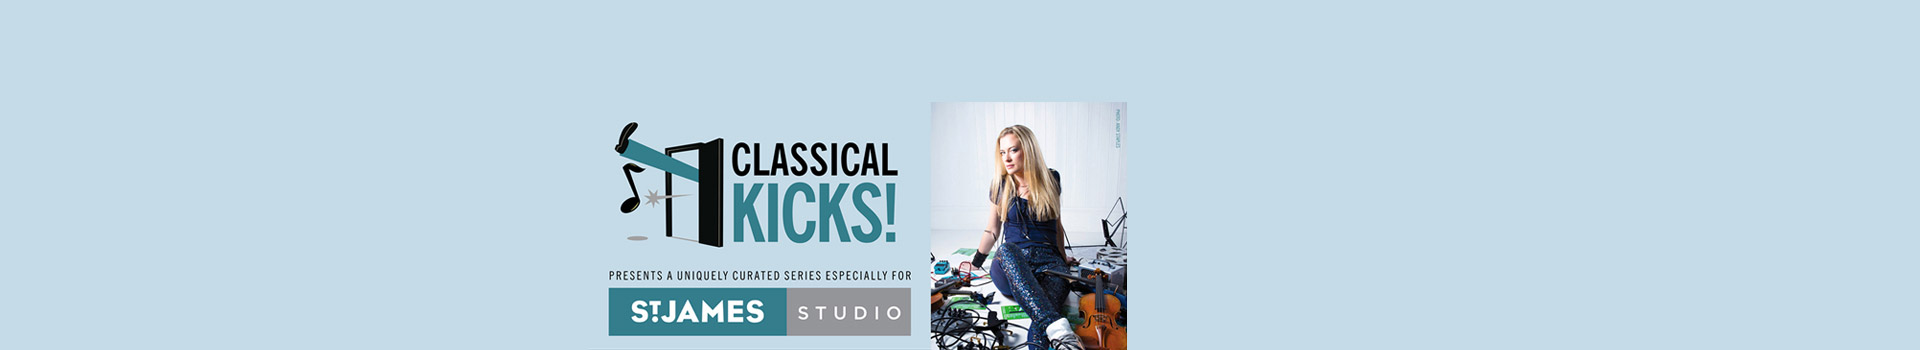 Classical Kicks: Rhapsody in Light Blue and The Great American Songbook banner image